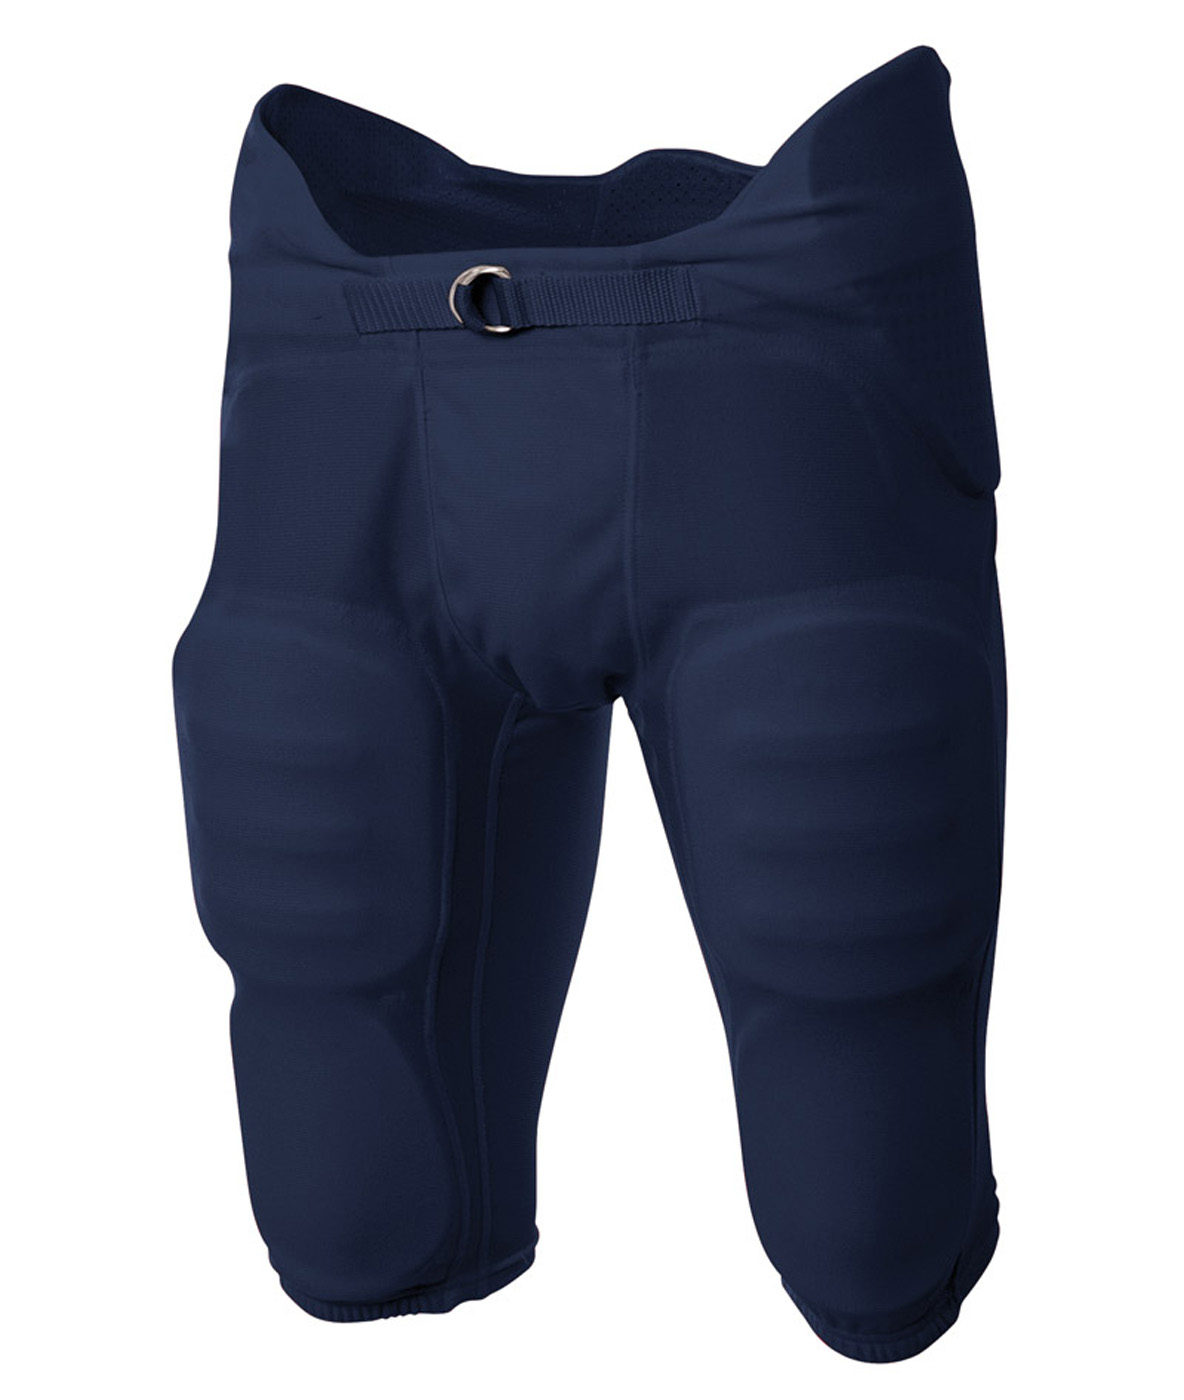 Flyless Integrated Football Pant by A4